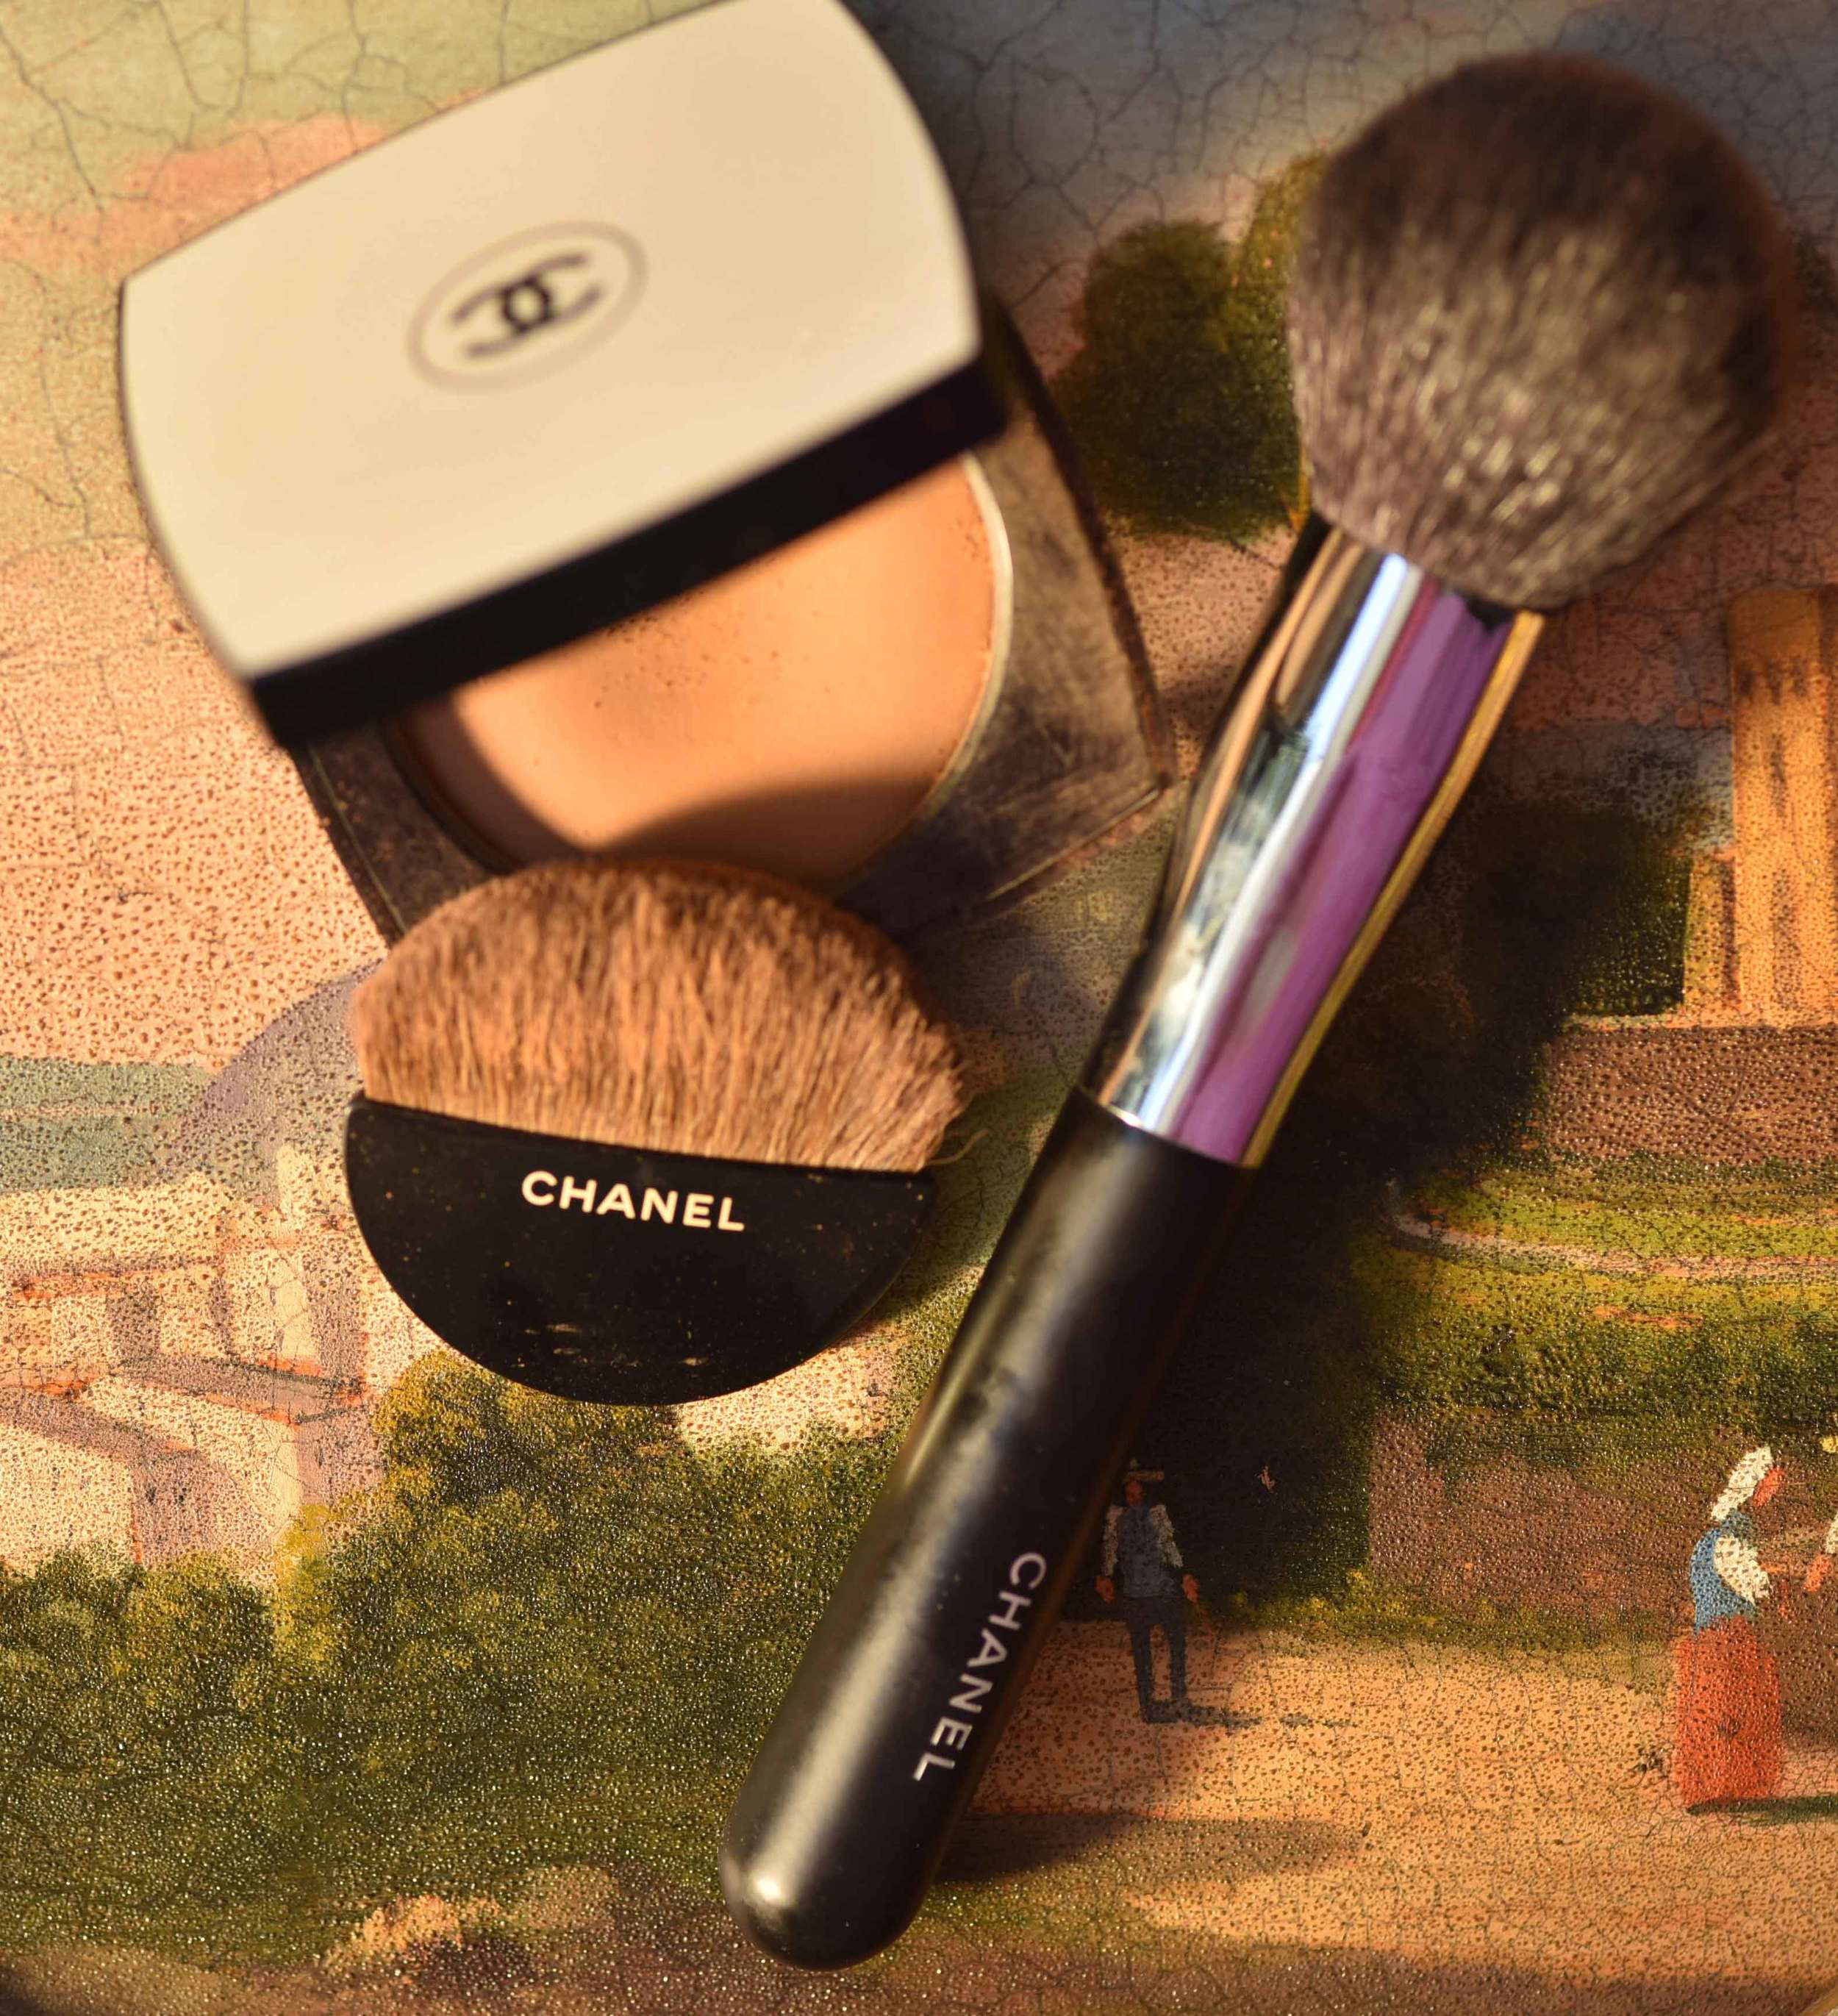 The Chanel Les Beiges Healthy Glow Sheer Color with the half-moon brush and the Chanel Powder Brush no. 1. Image©gunjanvirk